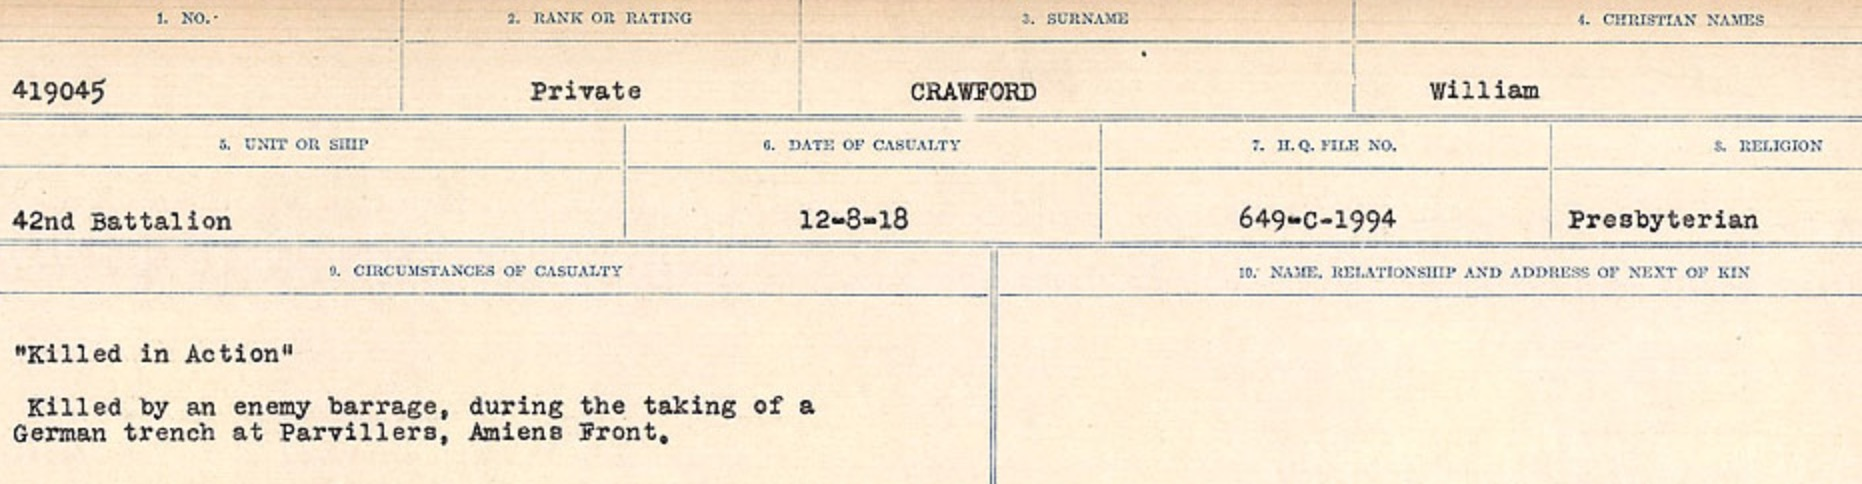 Circumstances of death registers– Source: Library and Archives Canada. CIRCUMSTANCES OF DEATH REGISTERS, FIRST WORLD WAR Surnames: CRABB TO CROSSLAND Microform Sequence 24; Volume Number 31829_B016733. Reference RG150, 1992-93/314, 168. Page 413 of 788.